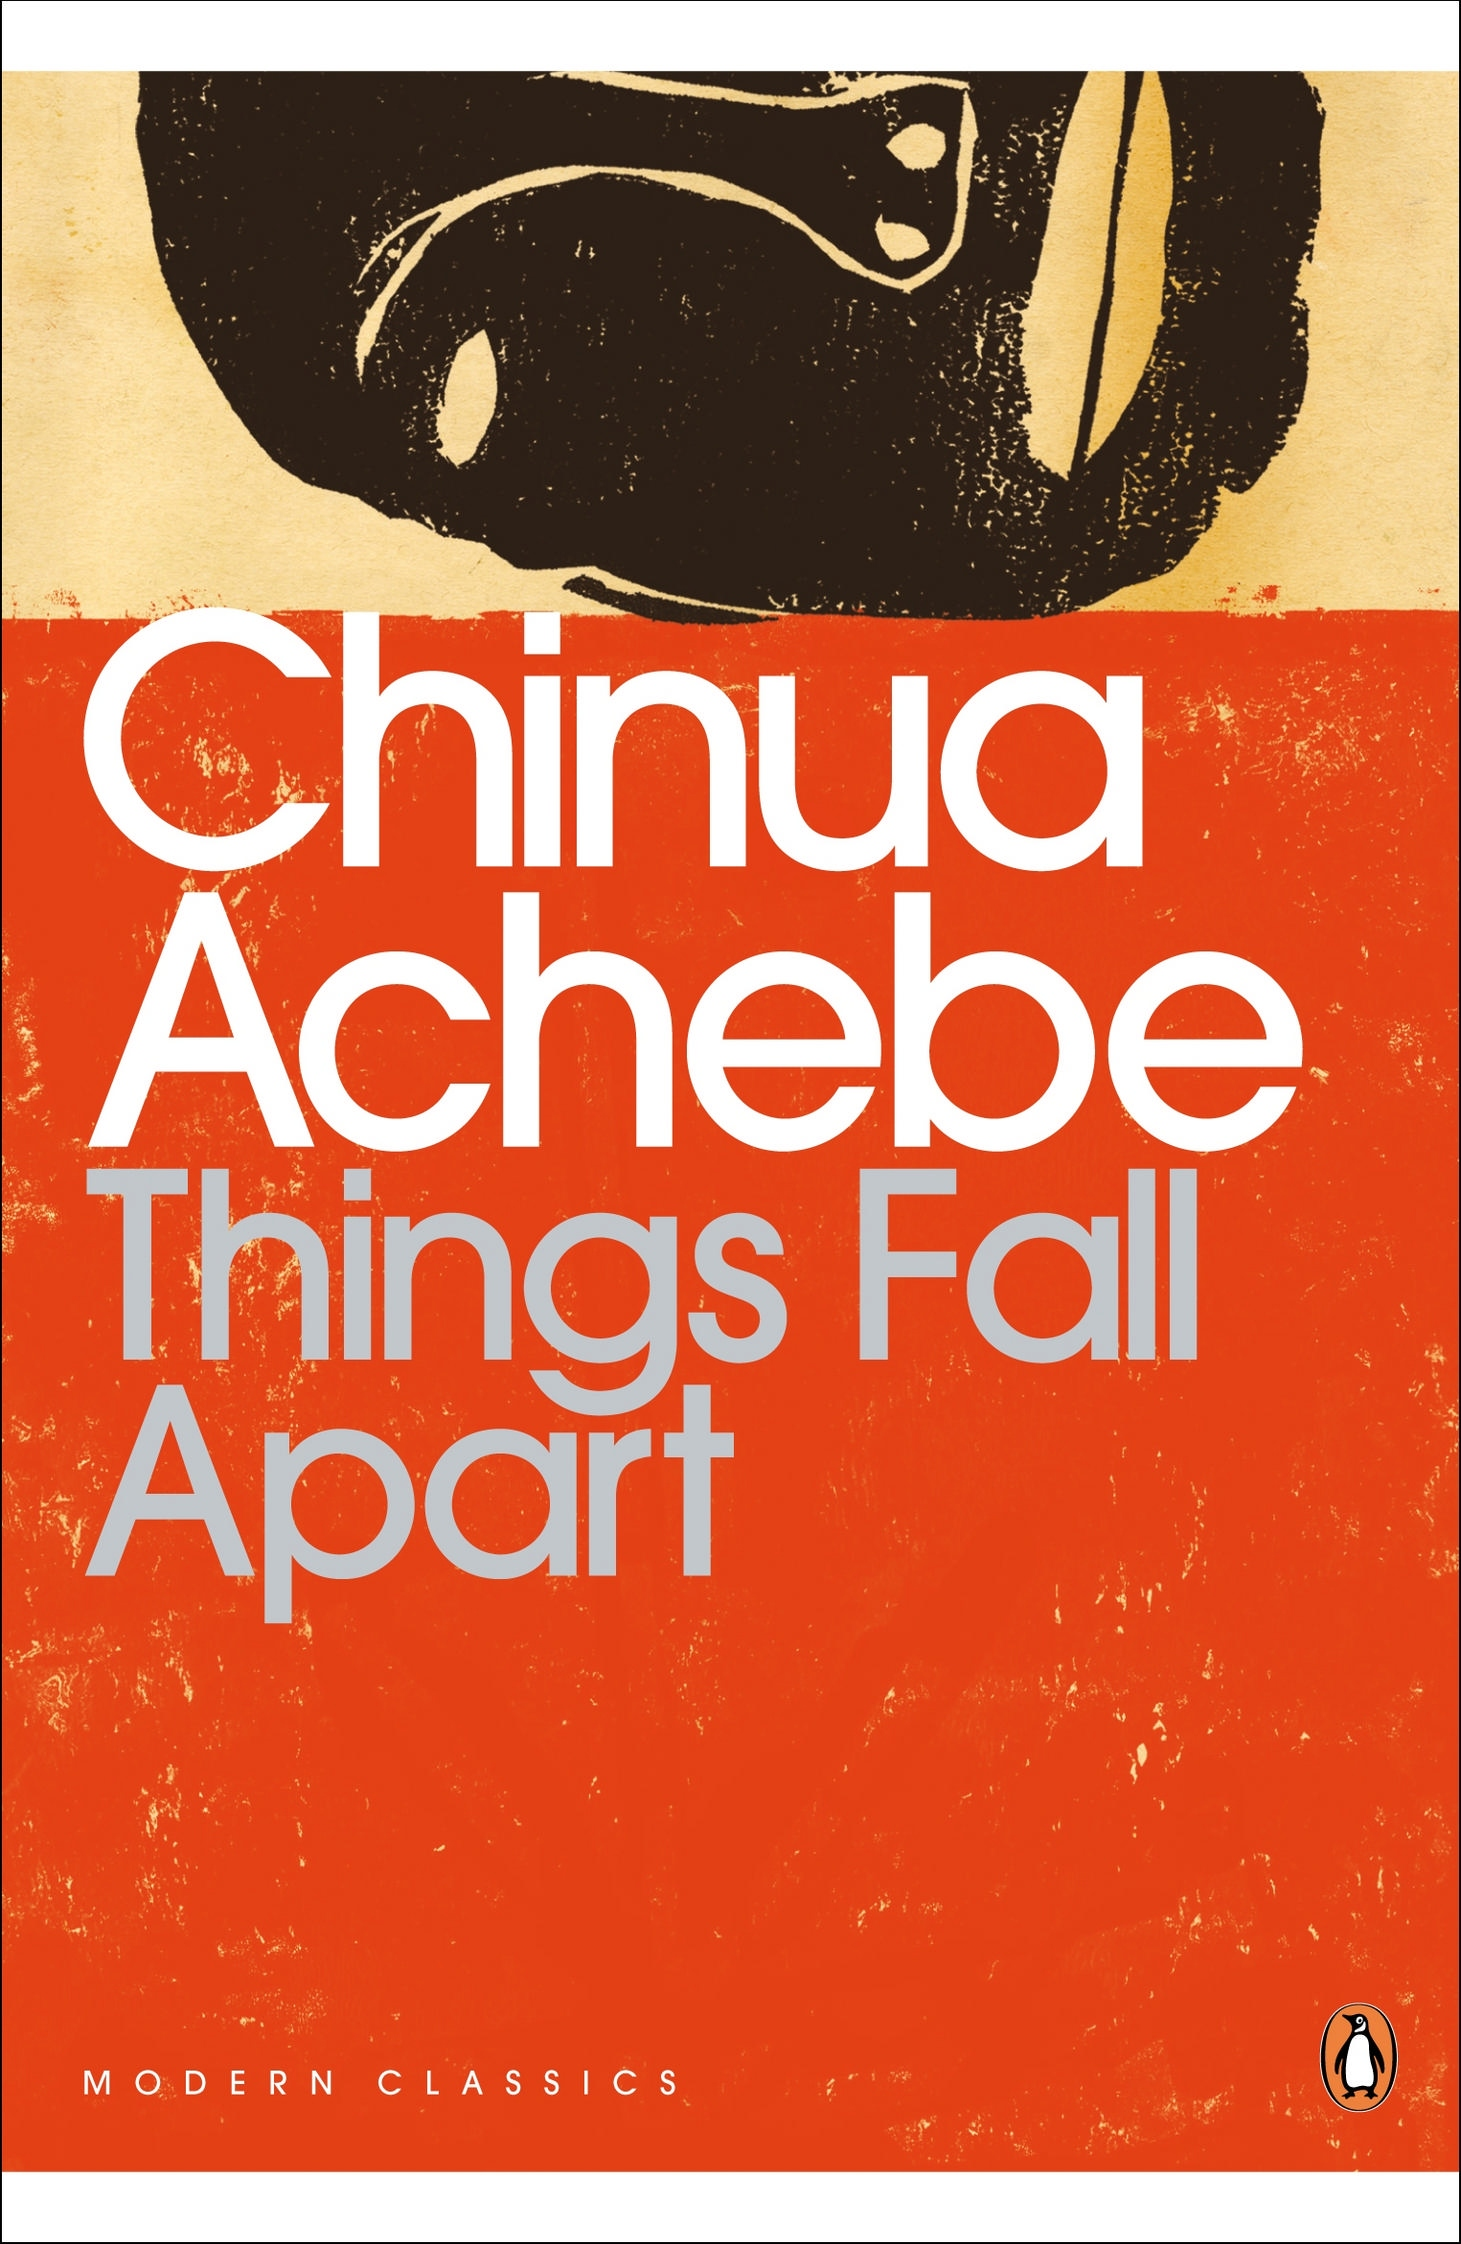 Okonkwo, the protagonist in 'Things Fall Apart', is a member of what clan?